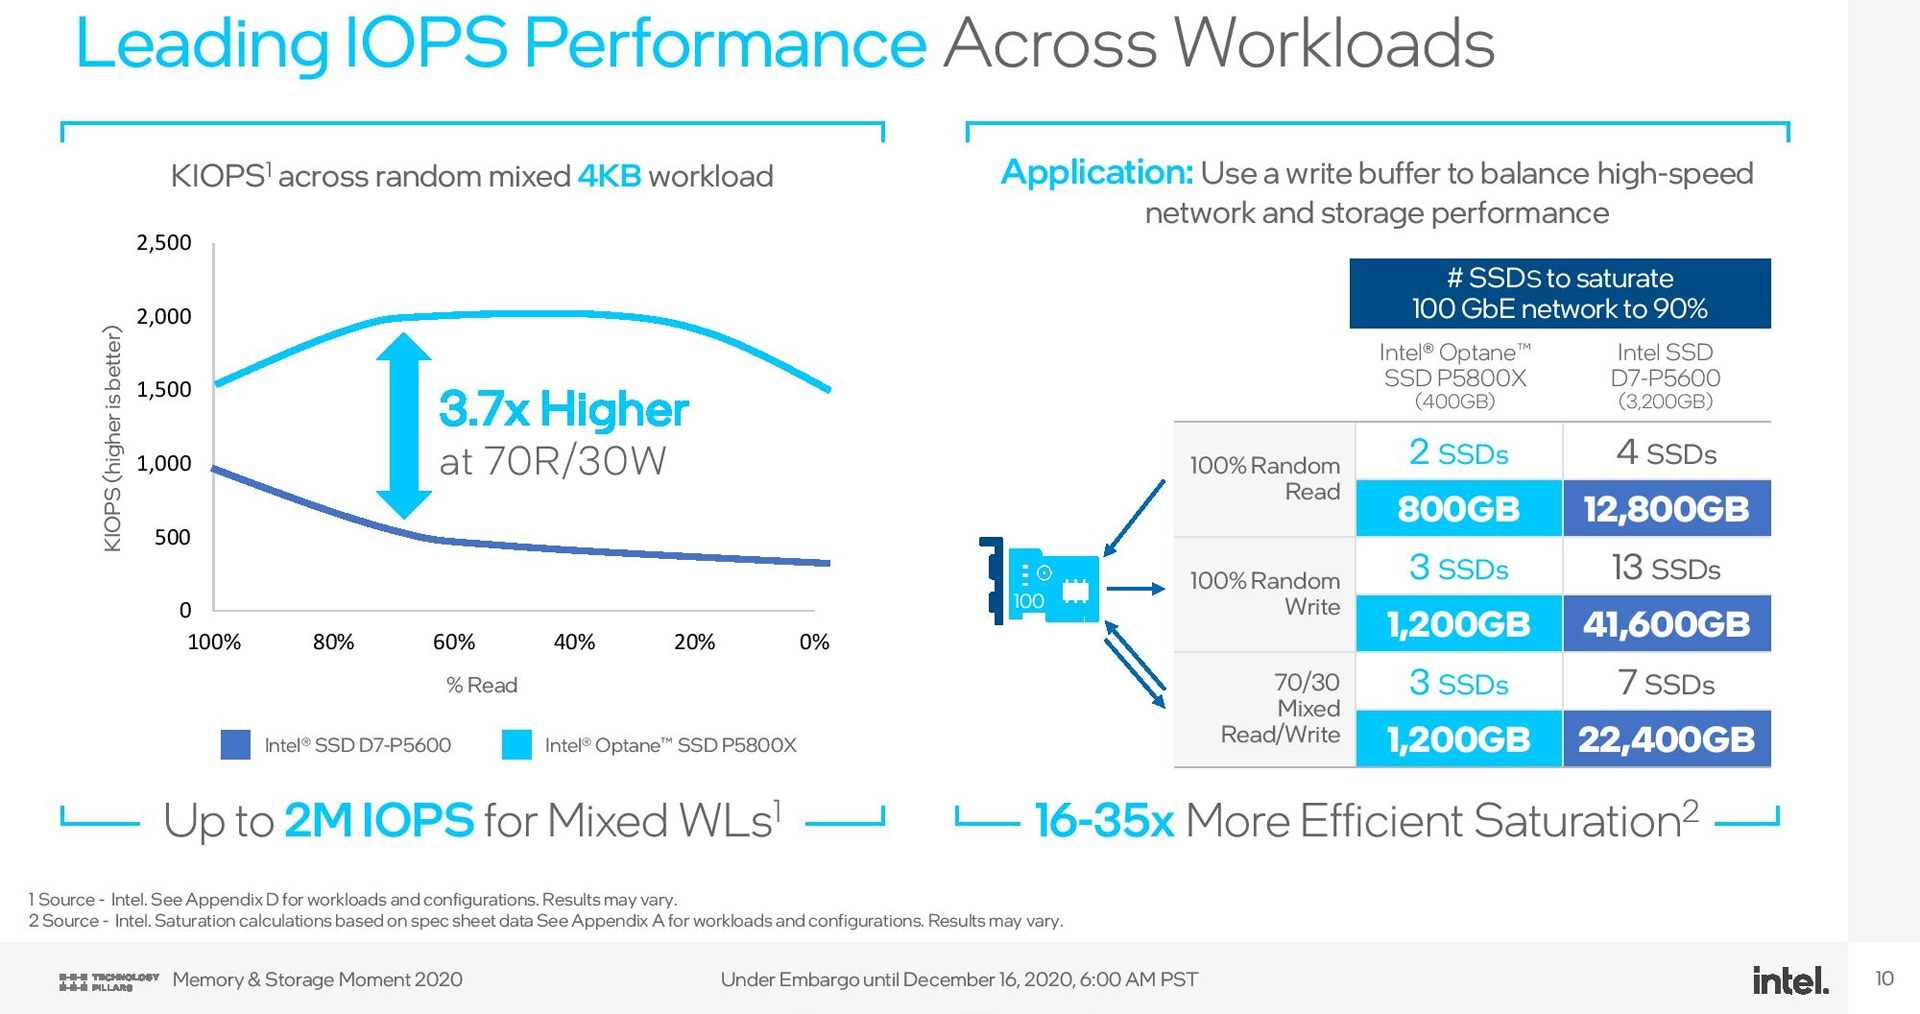 Details of the Ips / IOPS drive of the Intel P5800X SSD Optin